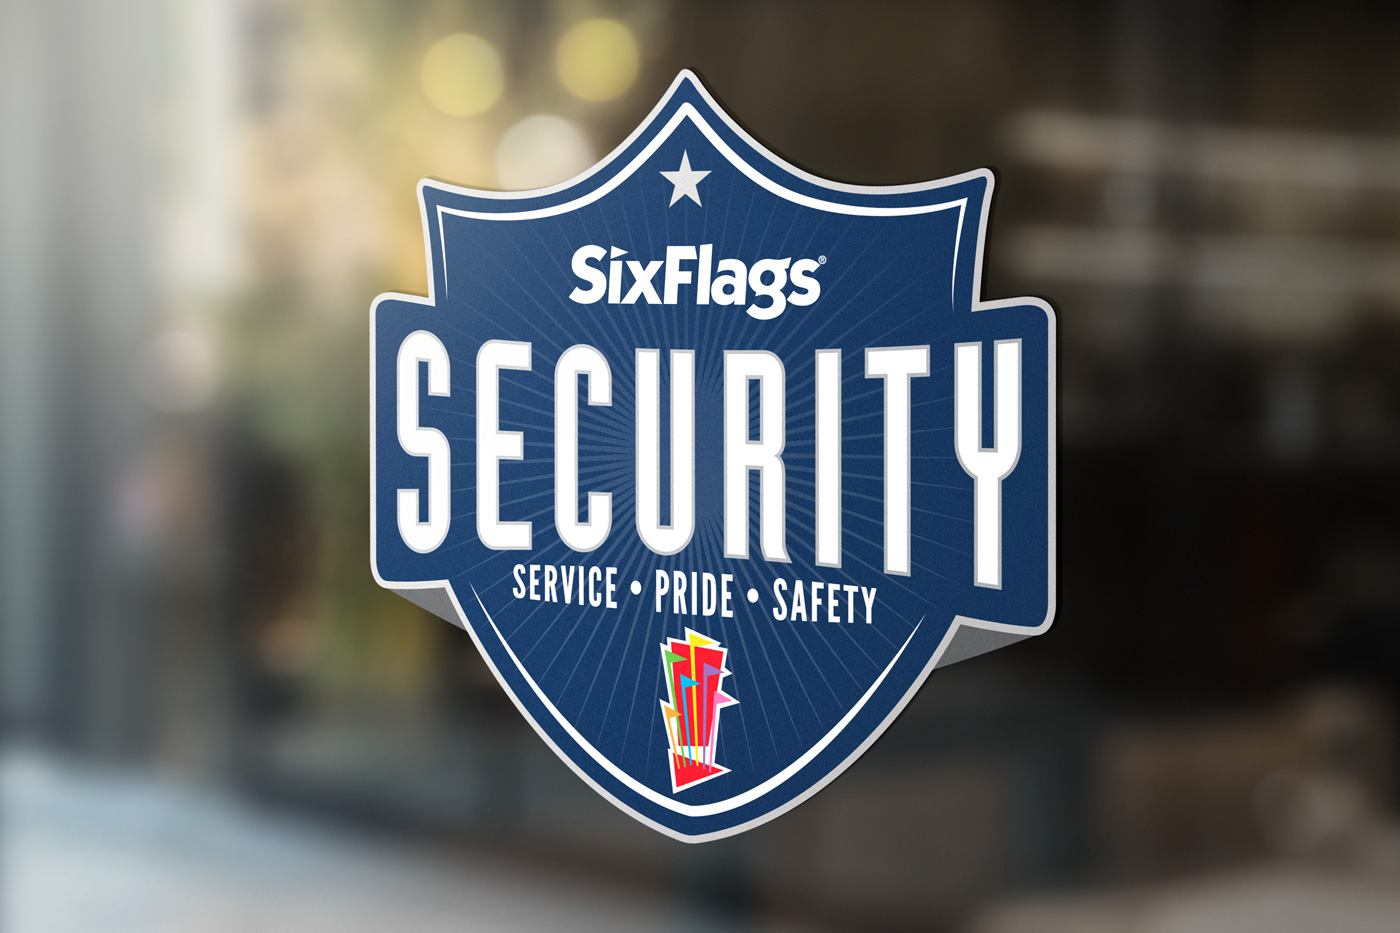 Six Flags Security Window Signage